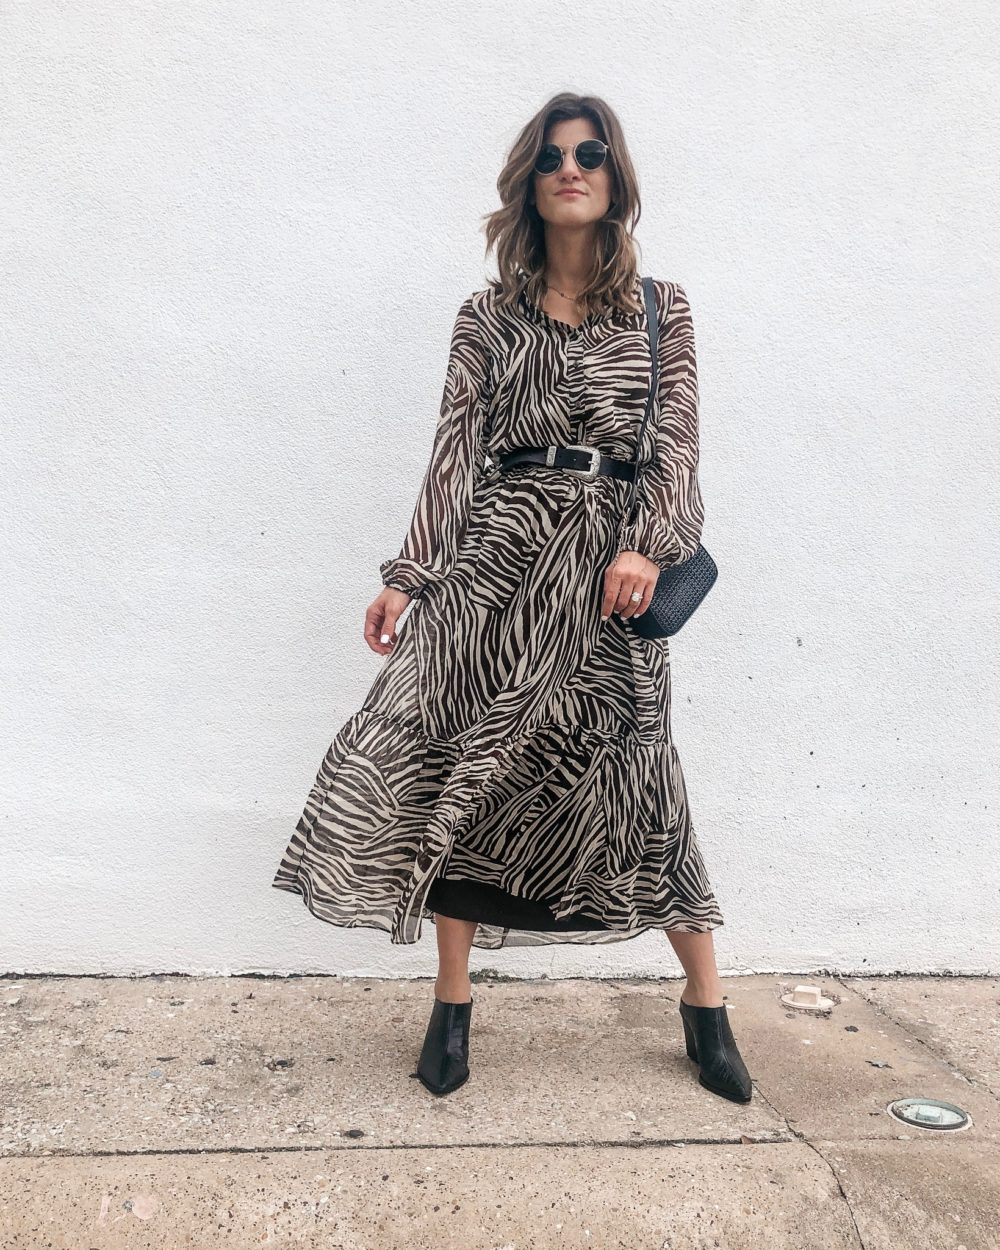 brighton keller wearing animal print dress with mules and belt on white wall